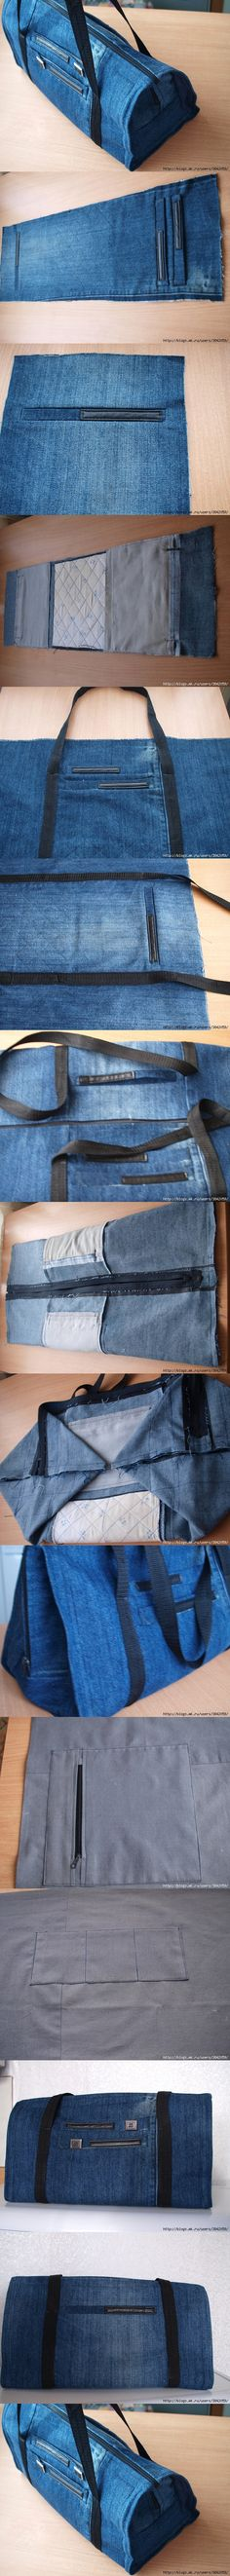 bag from jean tutorial